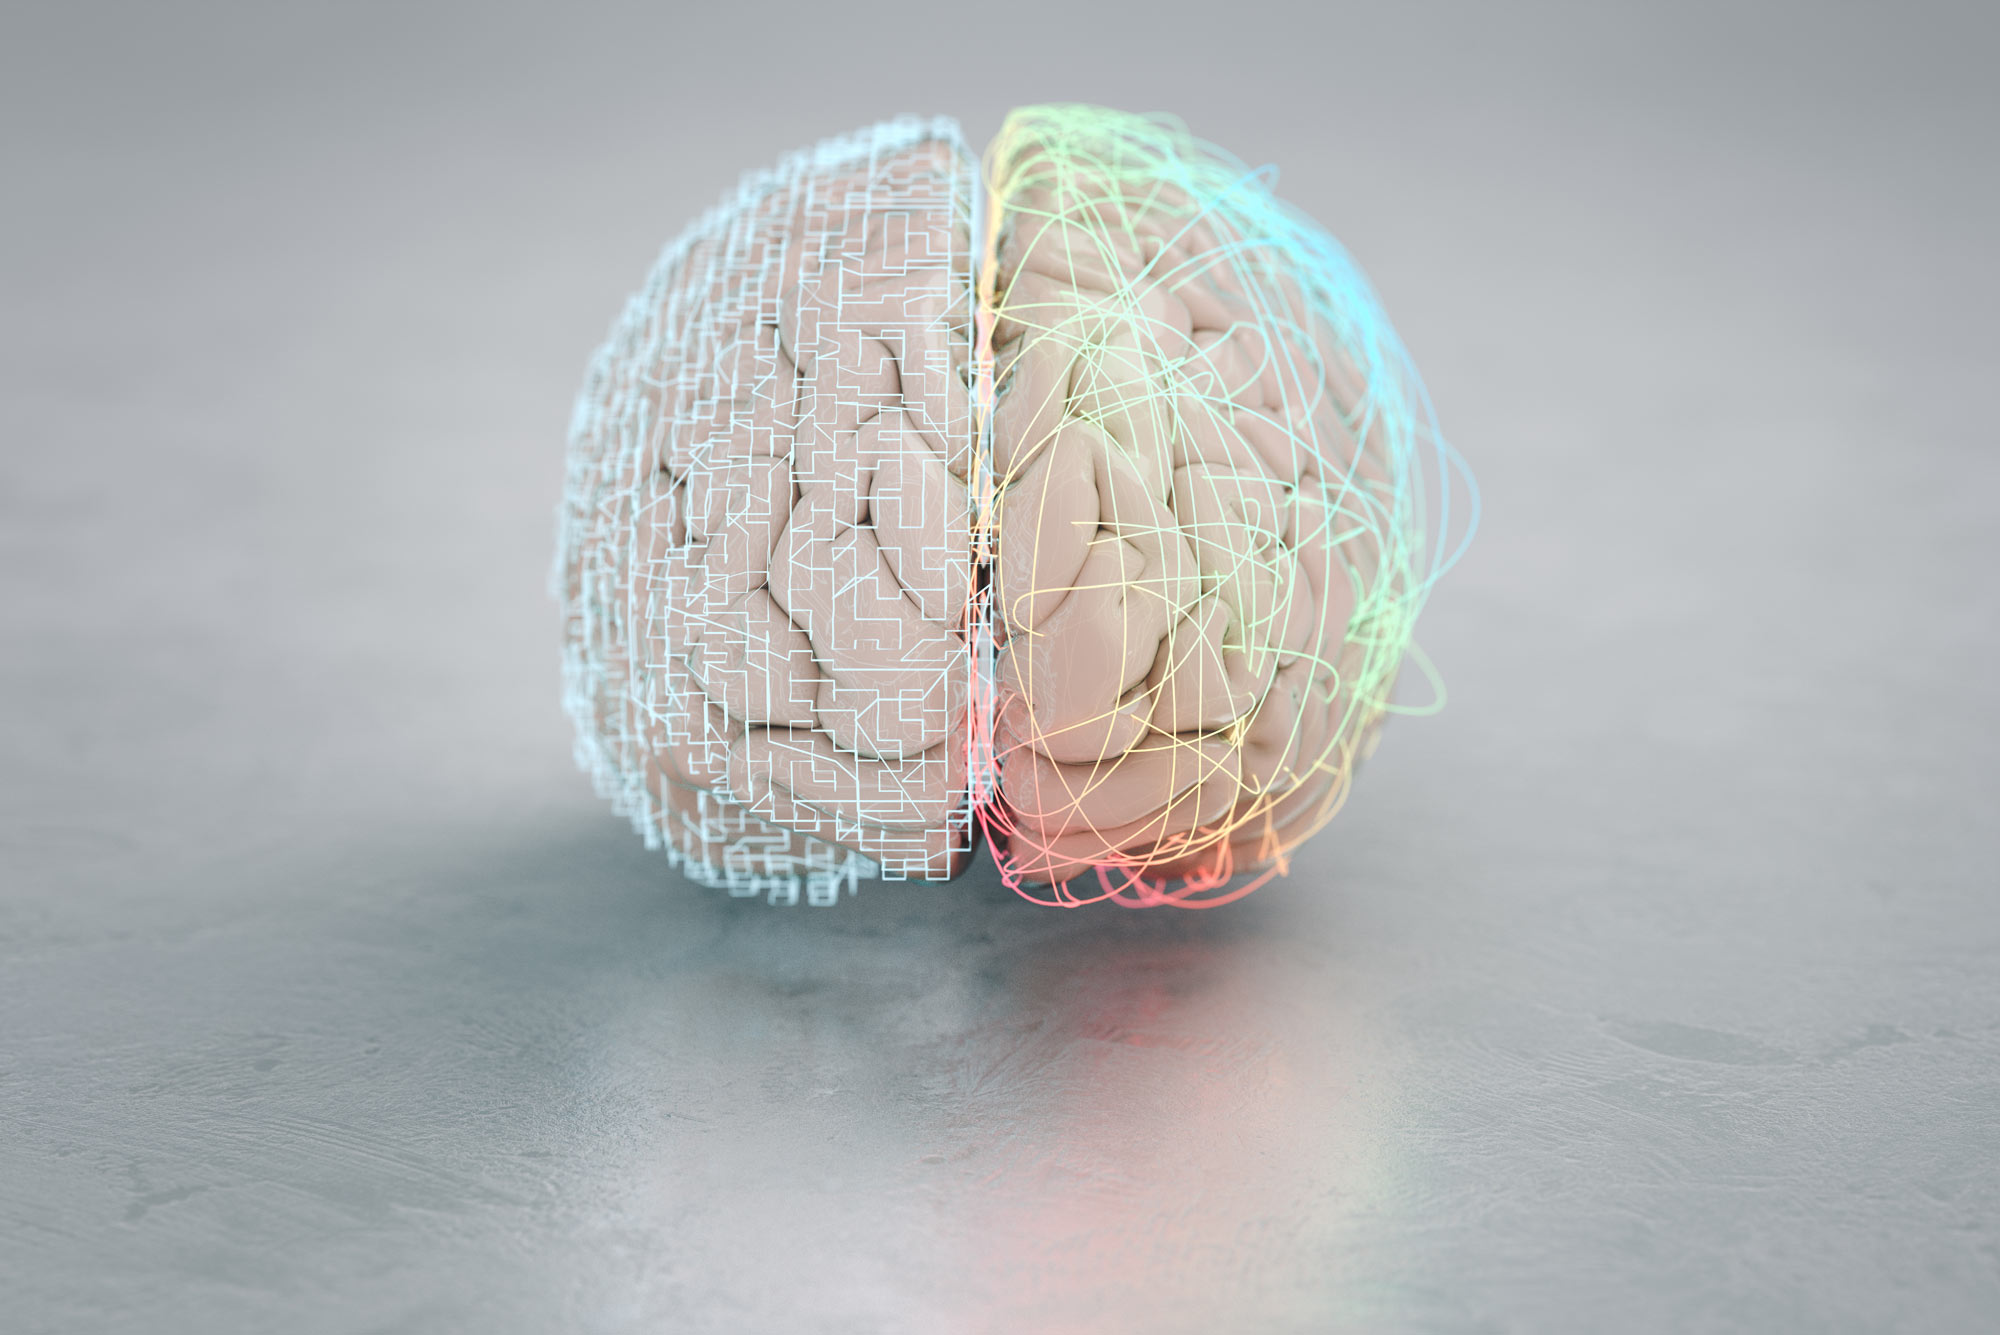 A rendering of a brain